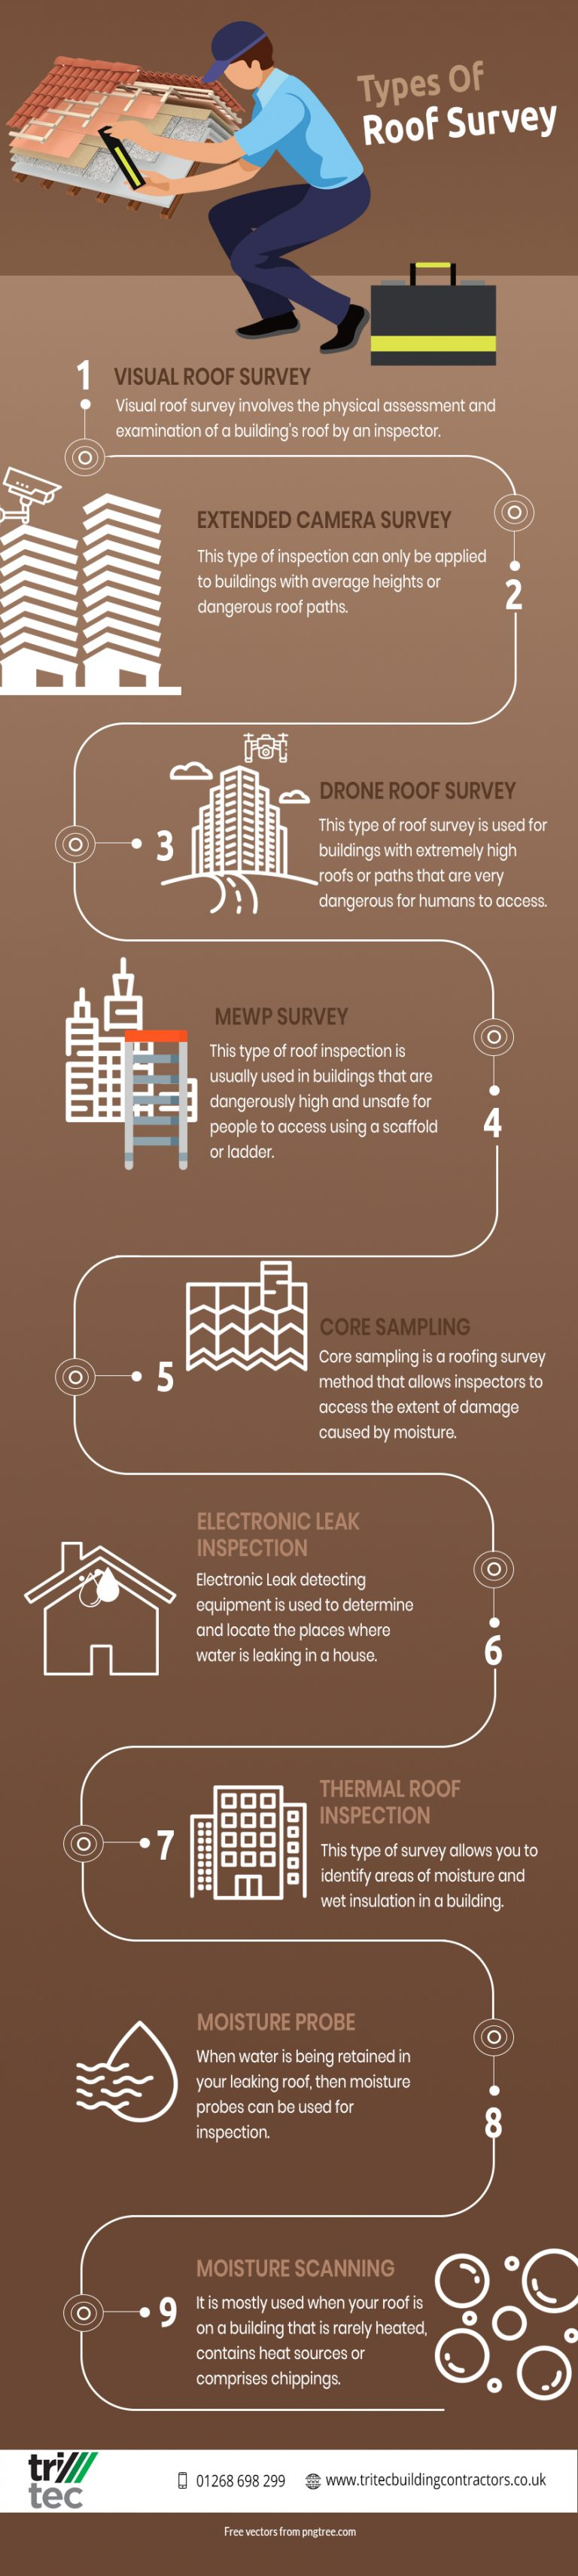 types-of-roof-survey